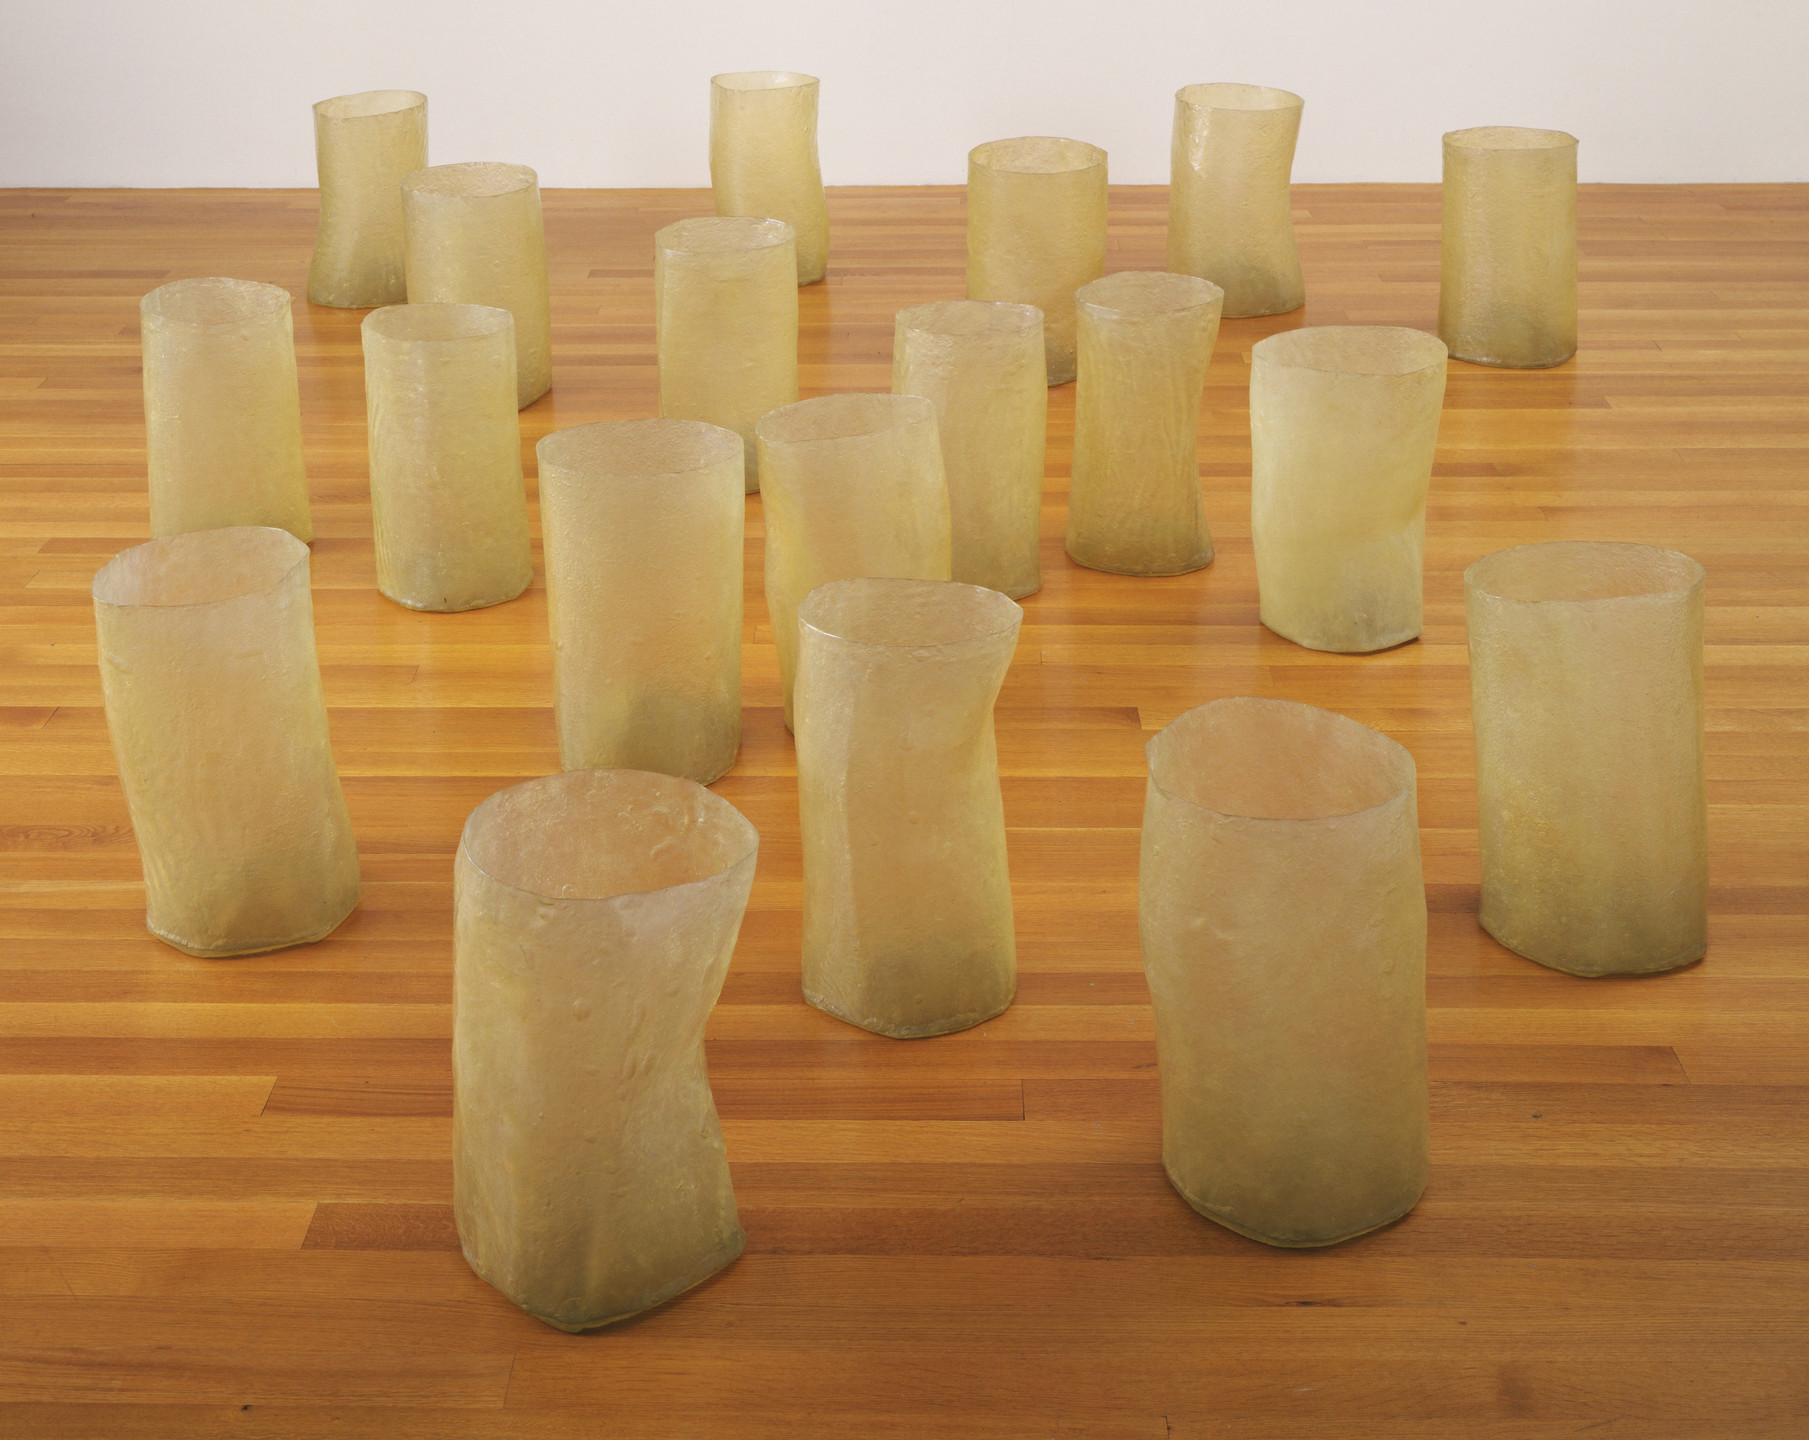 Eva Hesse. Repetition Nineteen III. 1968